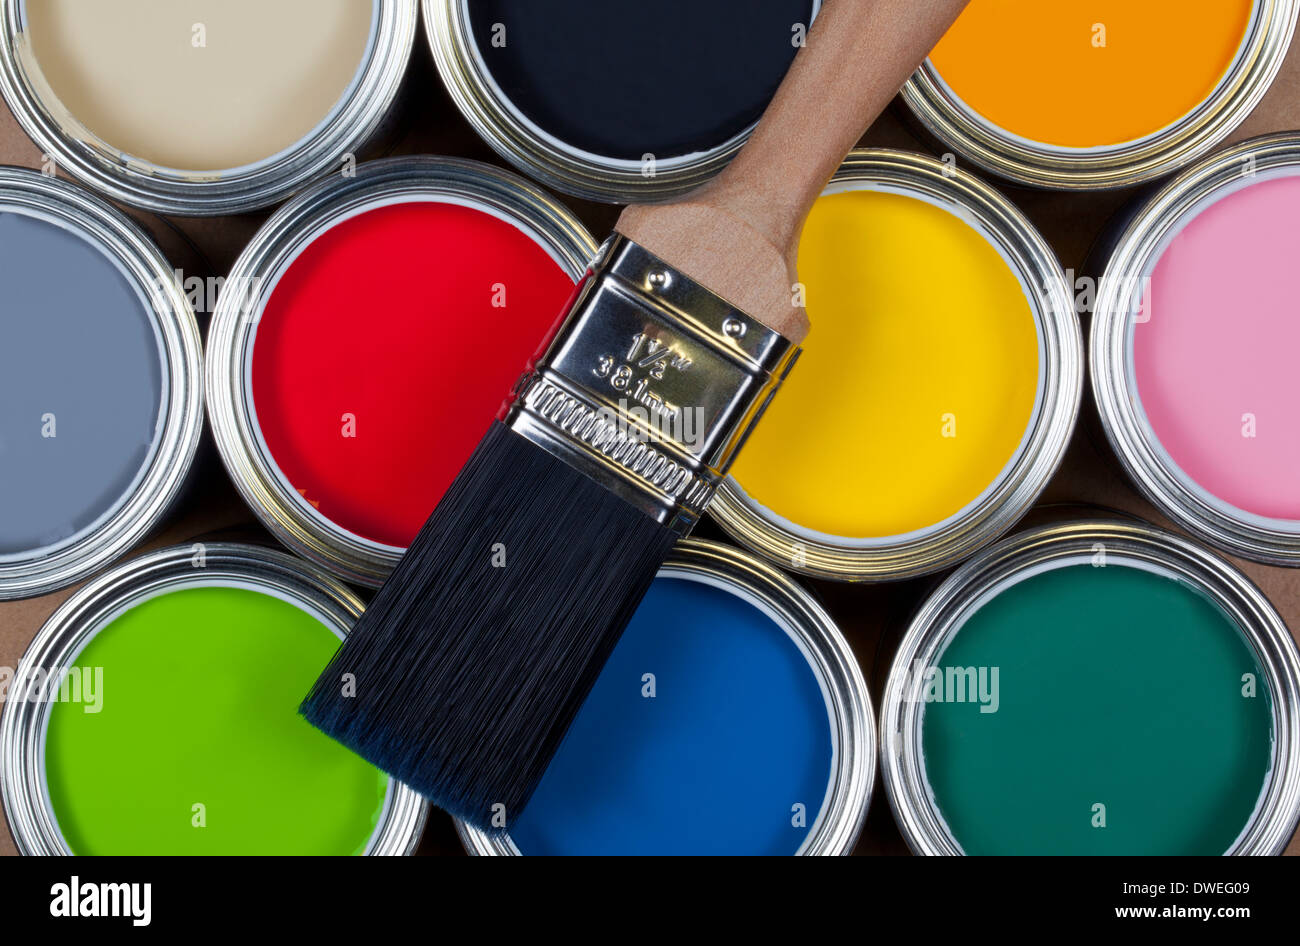 A selection of tins of colorful emulsion paint - Stock Image